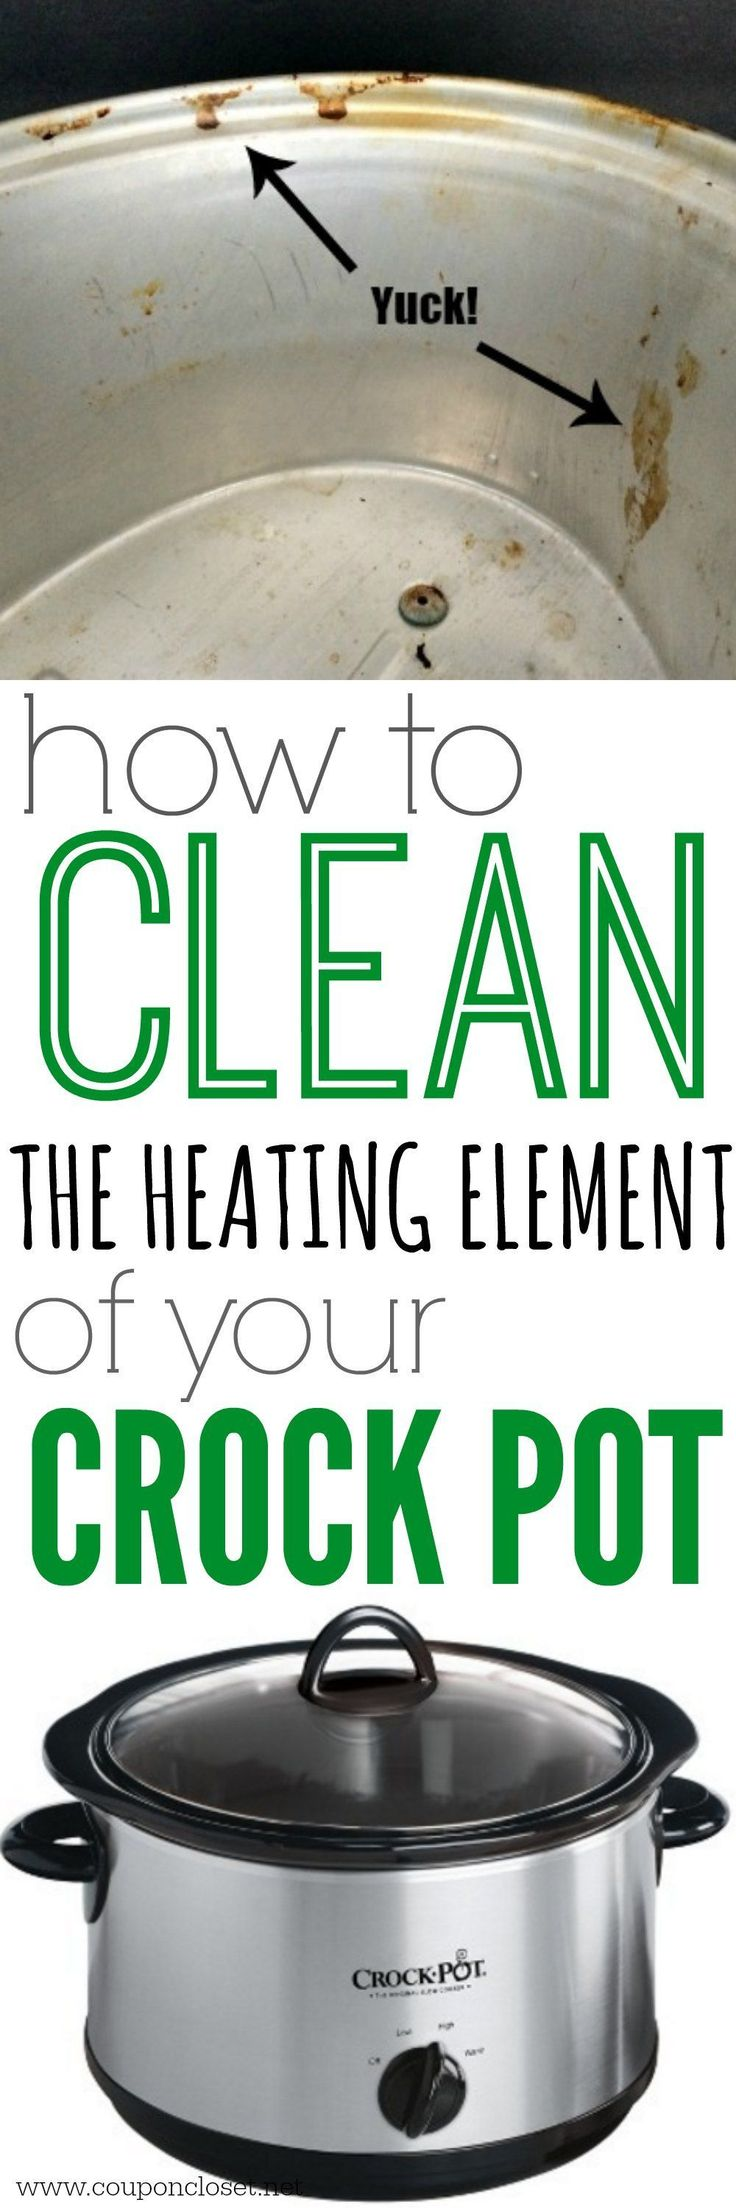 How to Clean inside of Crock pot - yes, you can actually clean the heating element of your crock pot. #howtoclean